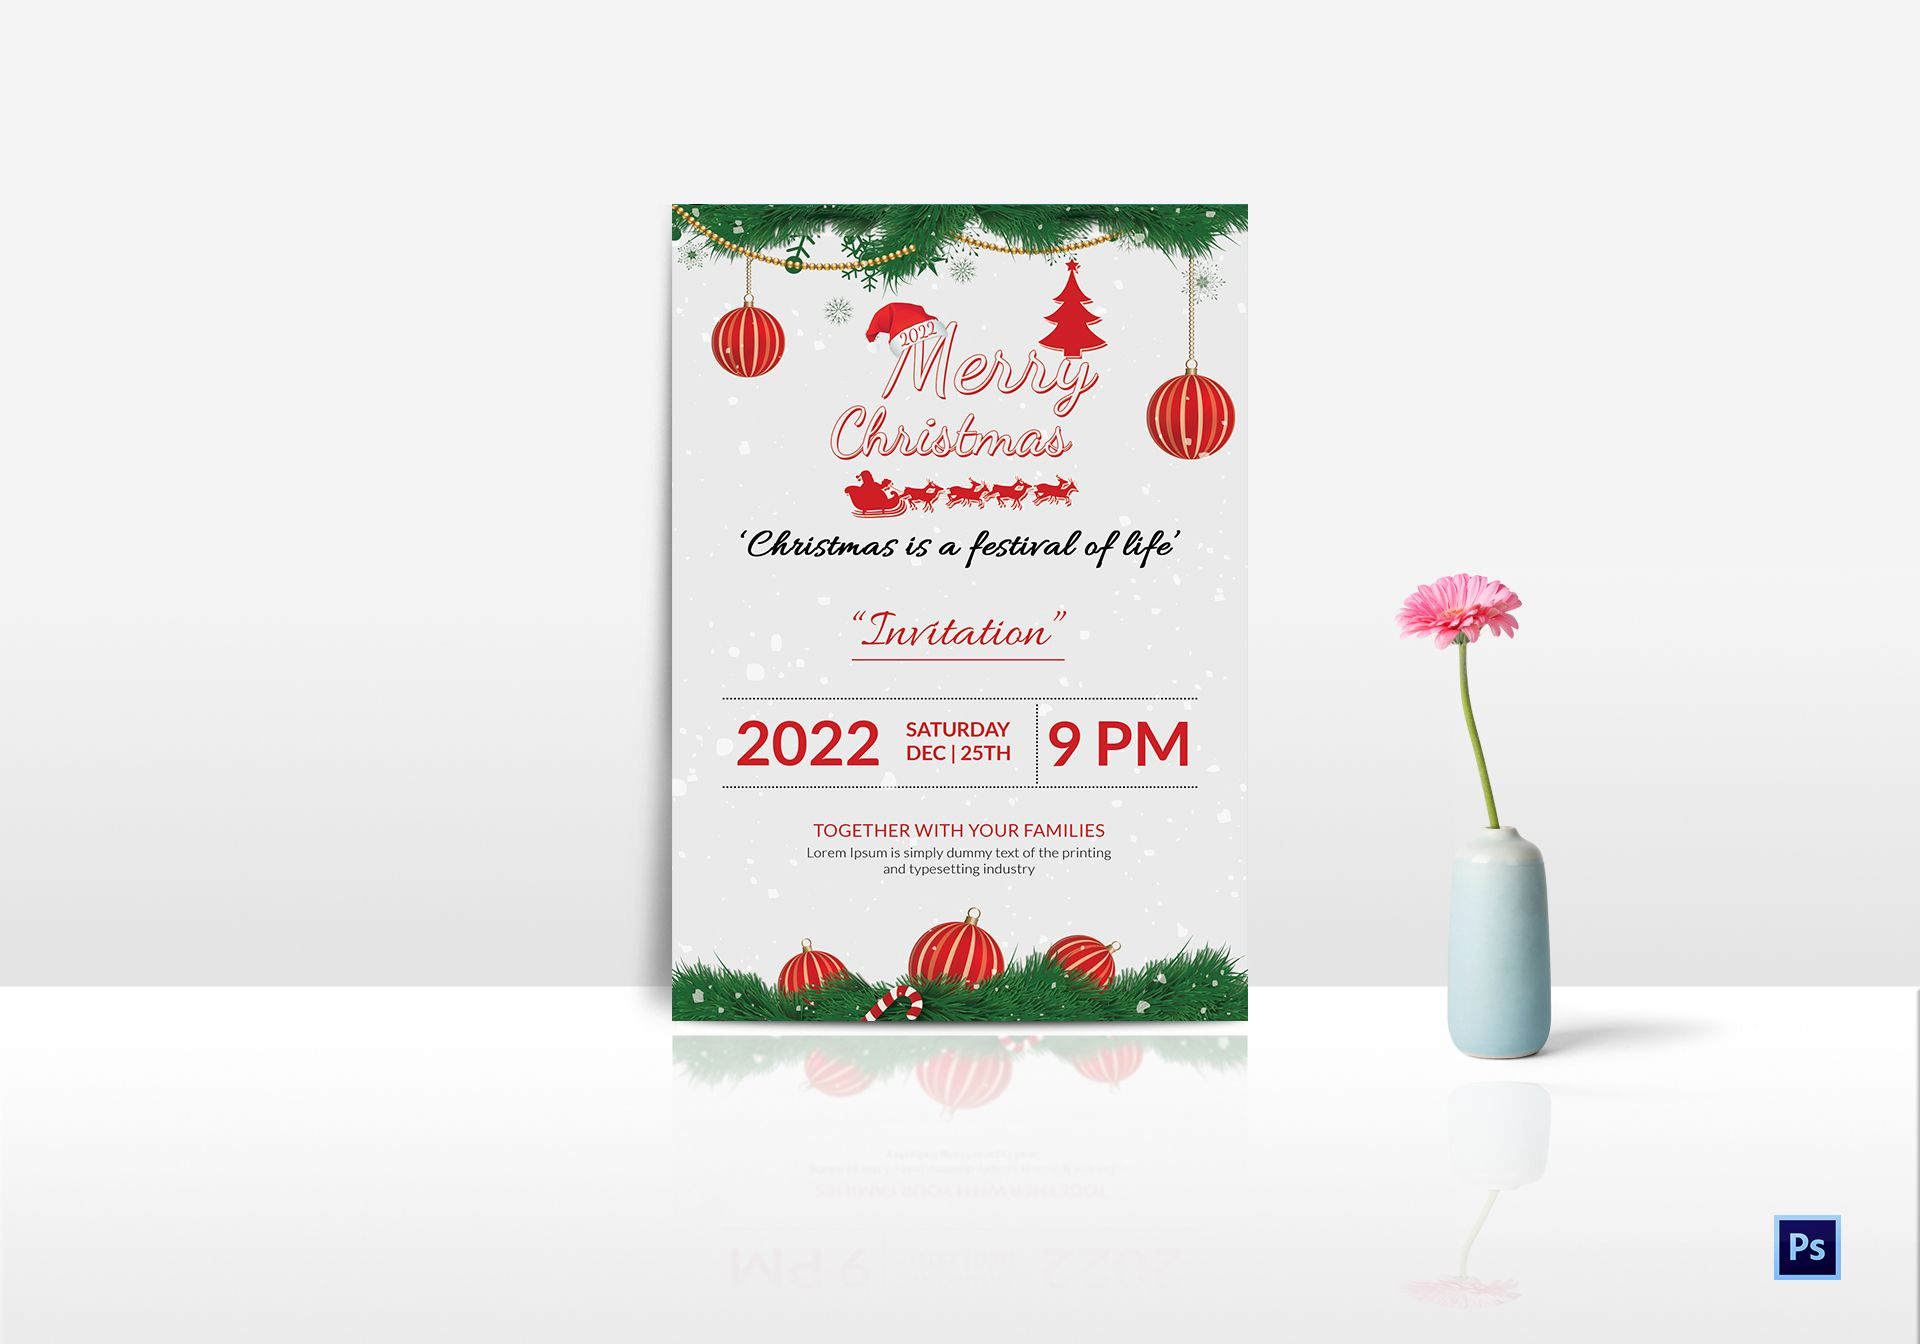 family christmas party invitation template in adobe photoshop